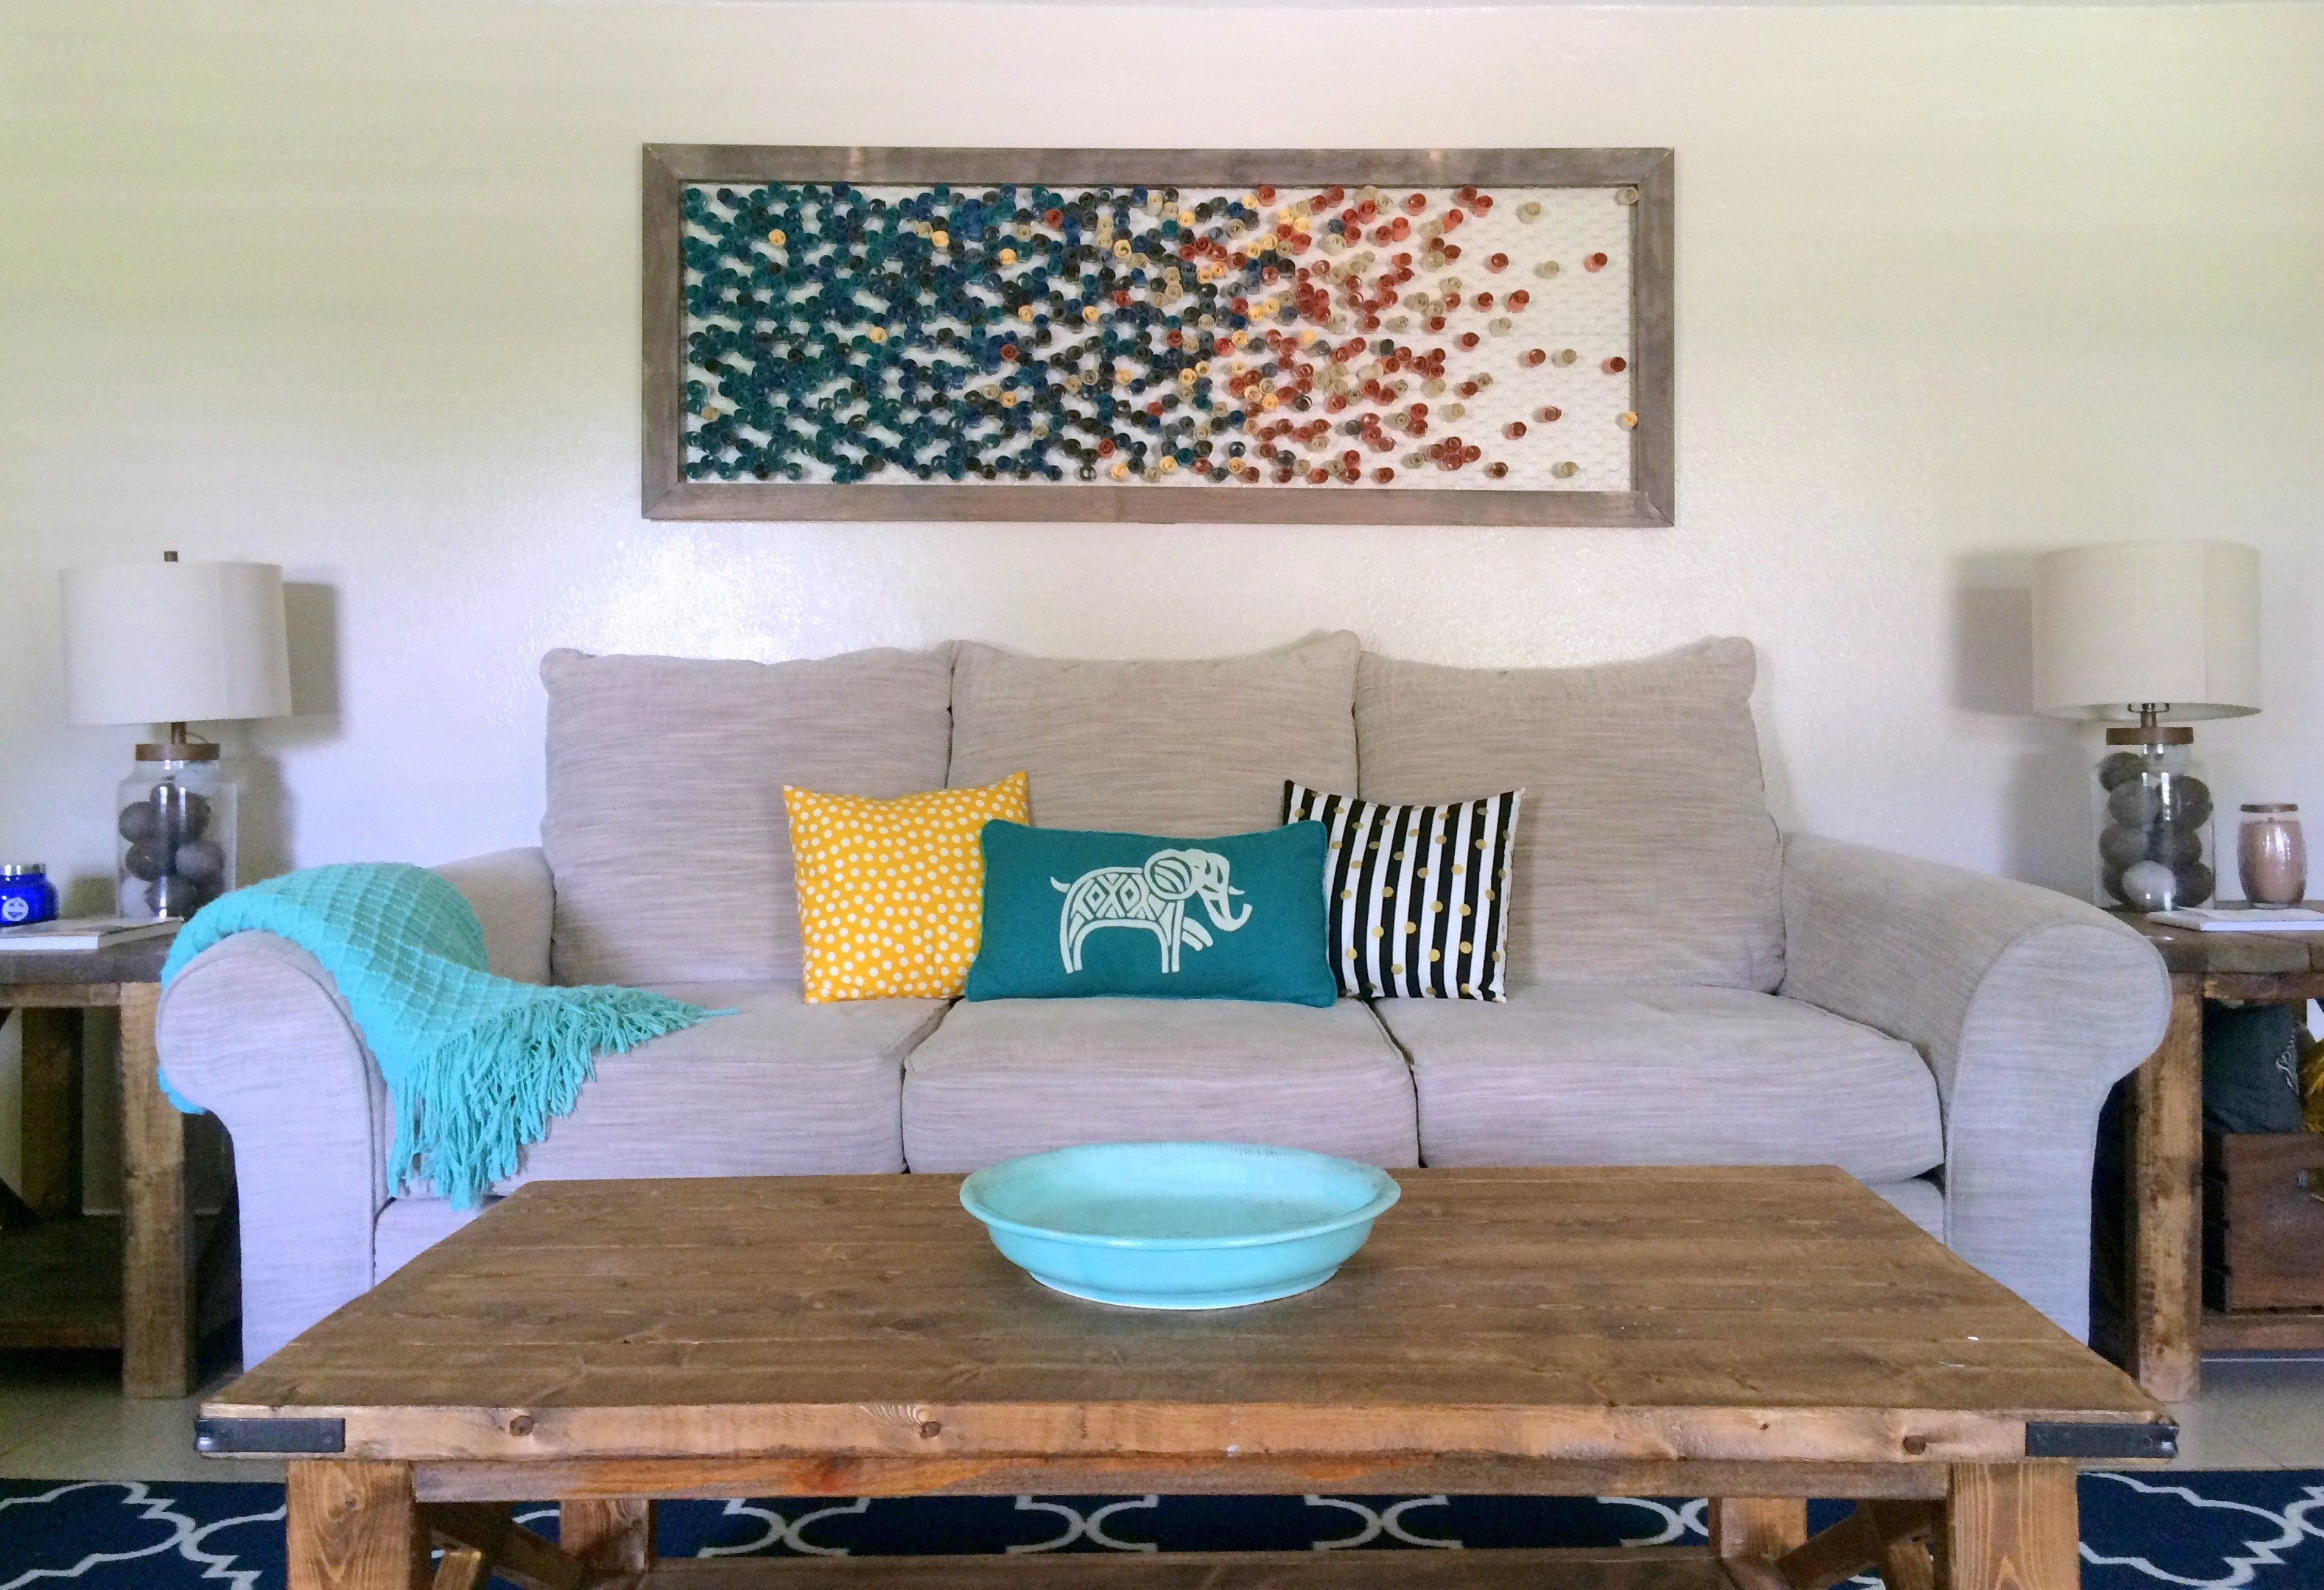 Best ideas about Living Room Wall . Save or Pin DIY Framed Paper Wall Art Within the Grove Now.